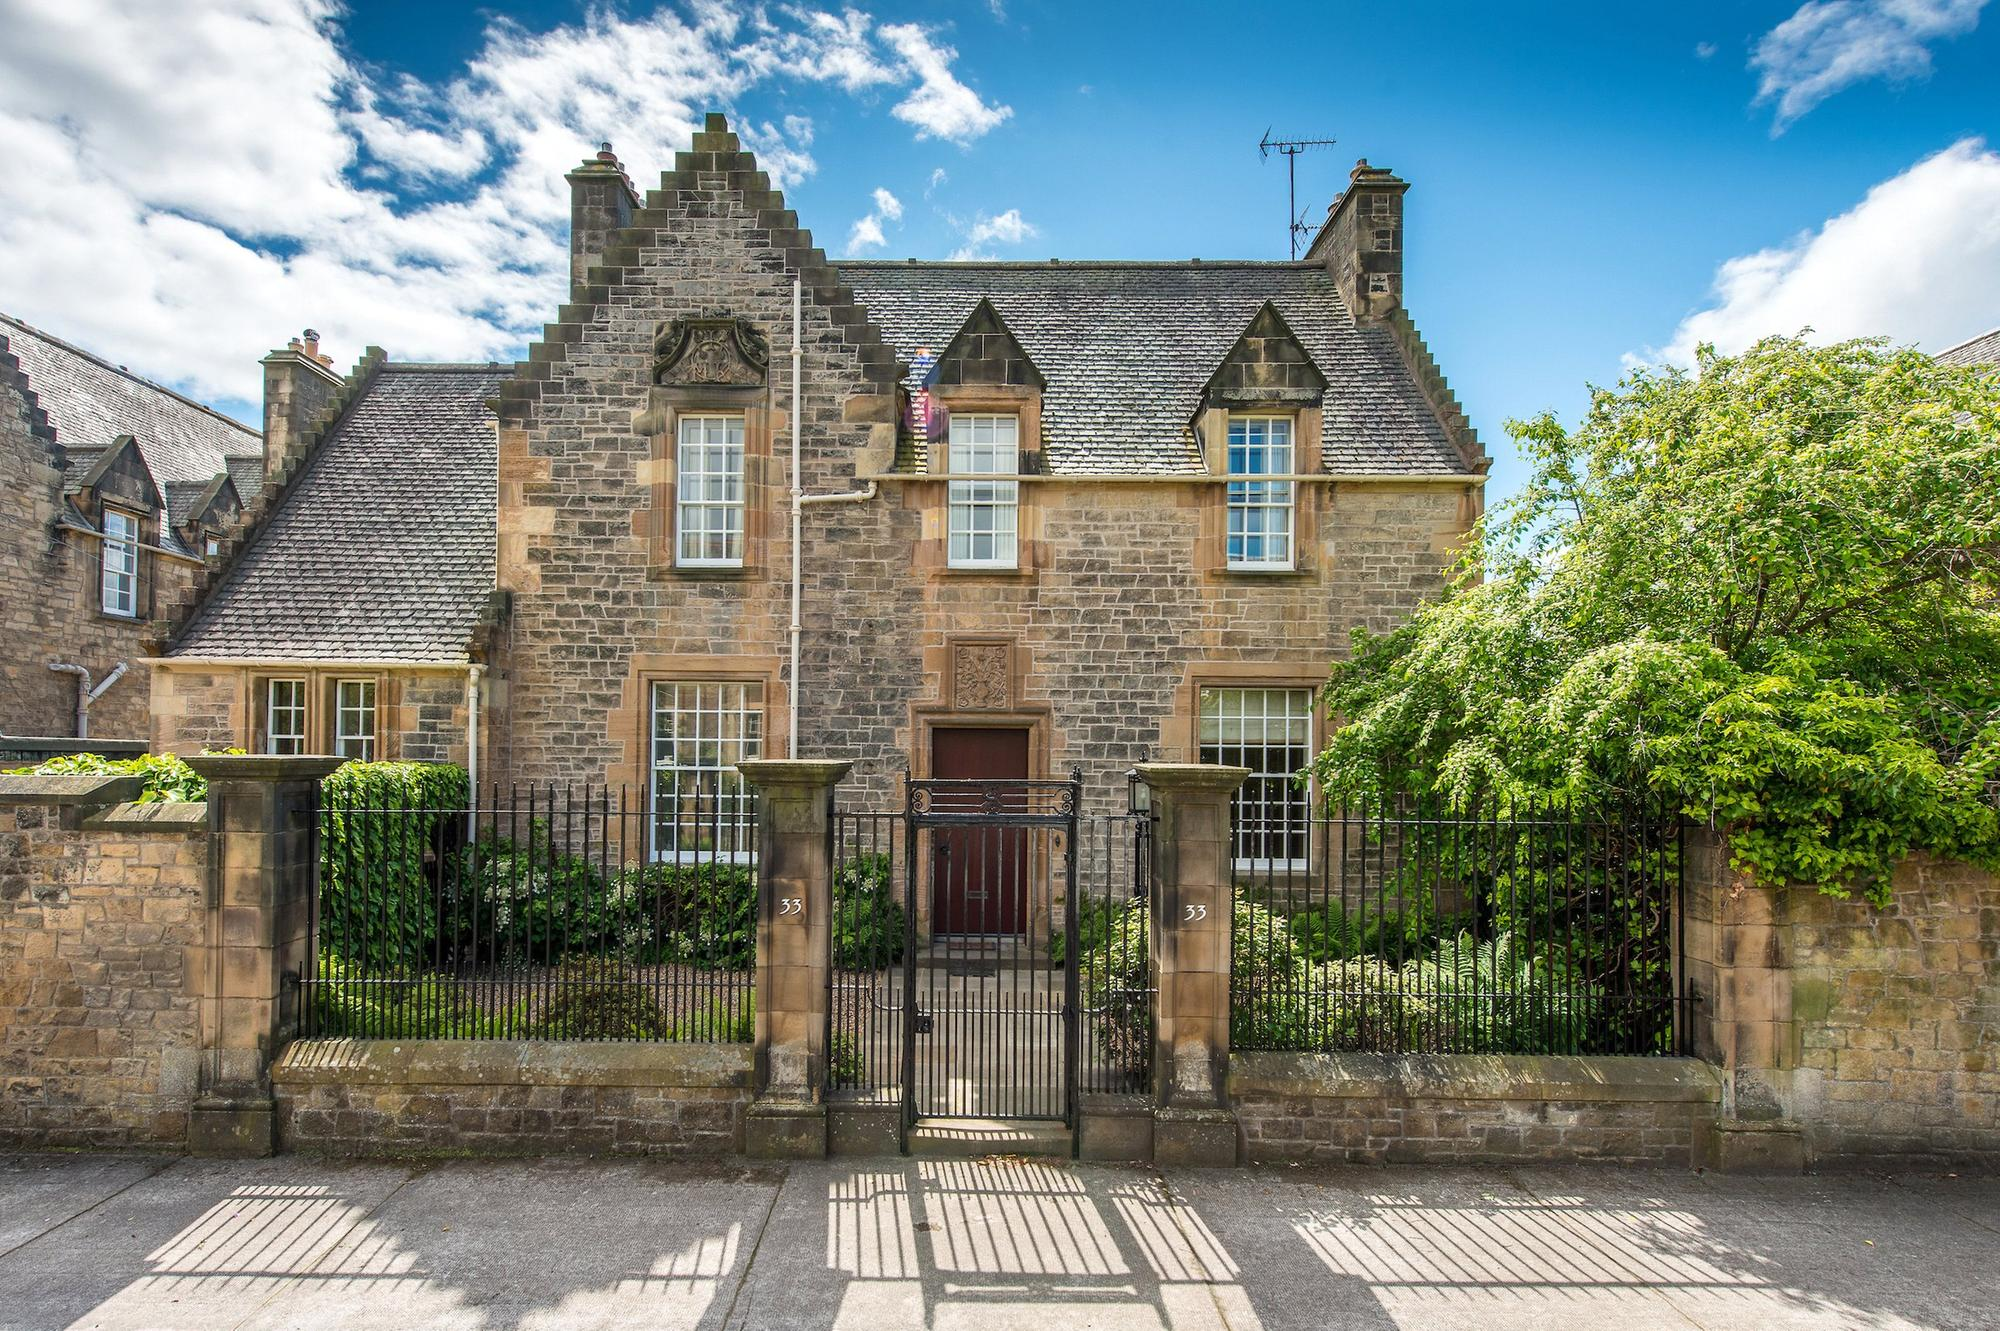 Take a look inside this stunning 17th century style Edinburgh mansion designed and lived in by famous Scottish architect